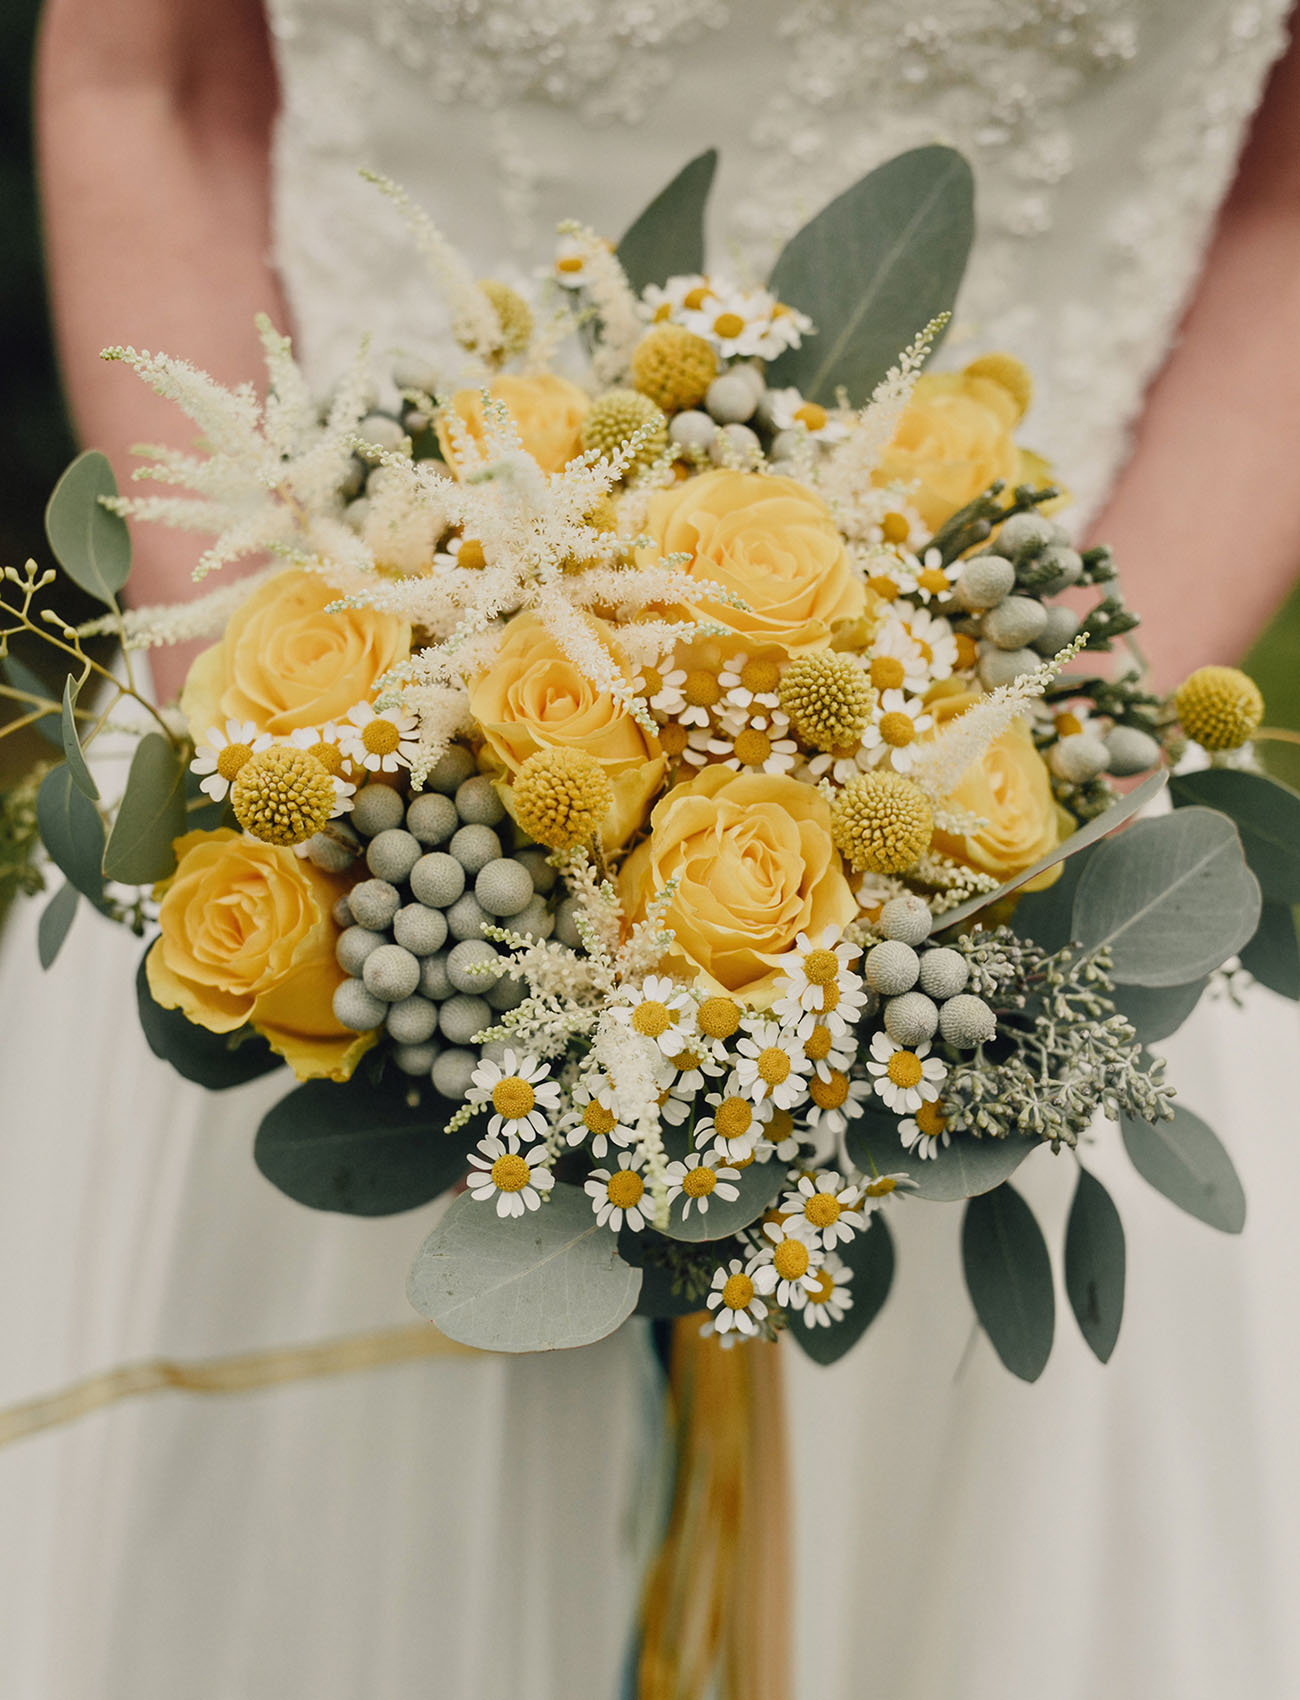 rose and daisy bouquet